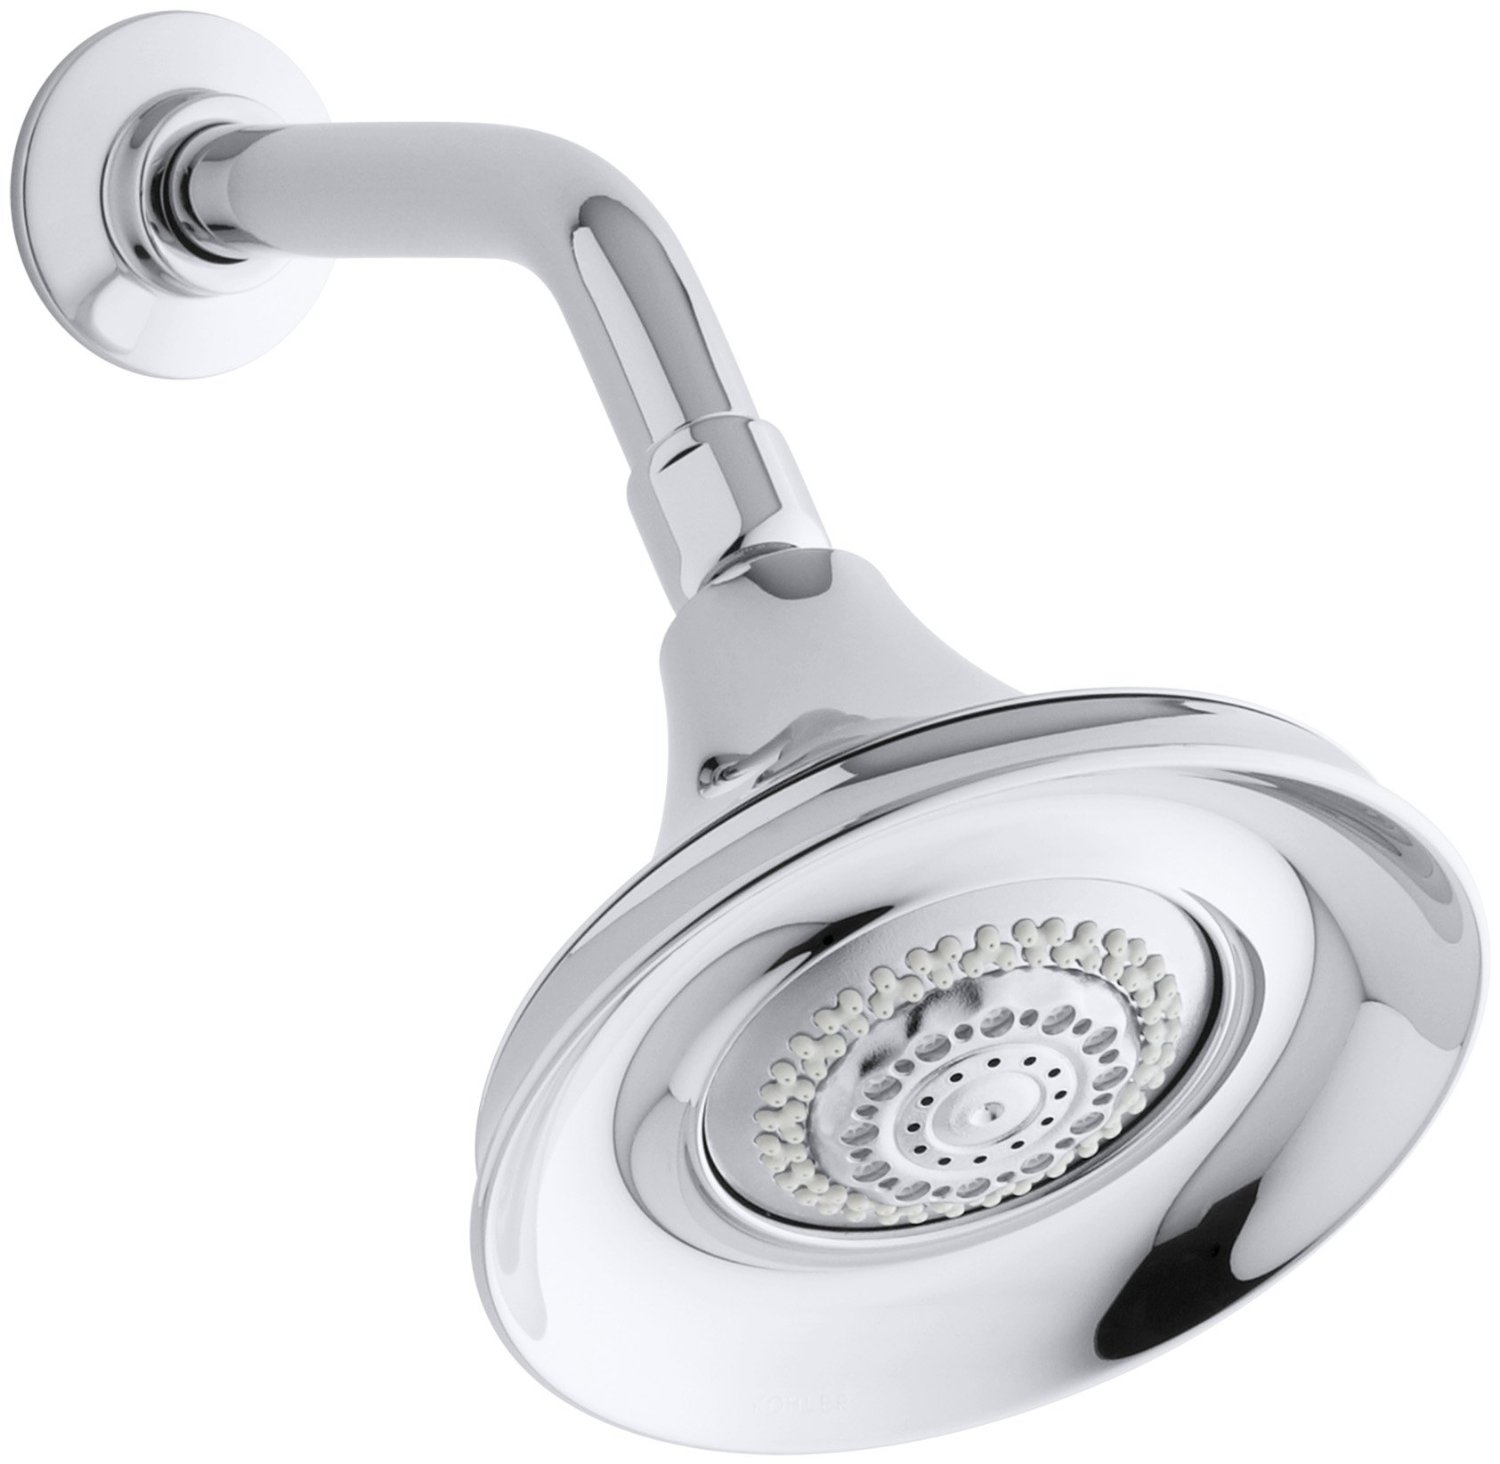 Top 10 Best Kohler Shower Heads — An Unbiased Review 2020